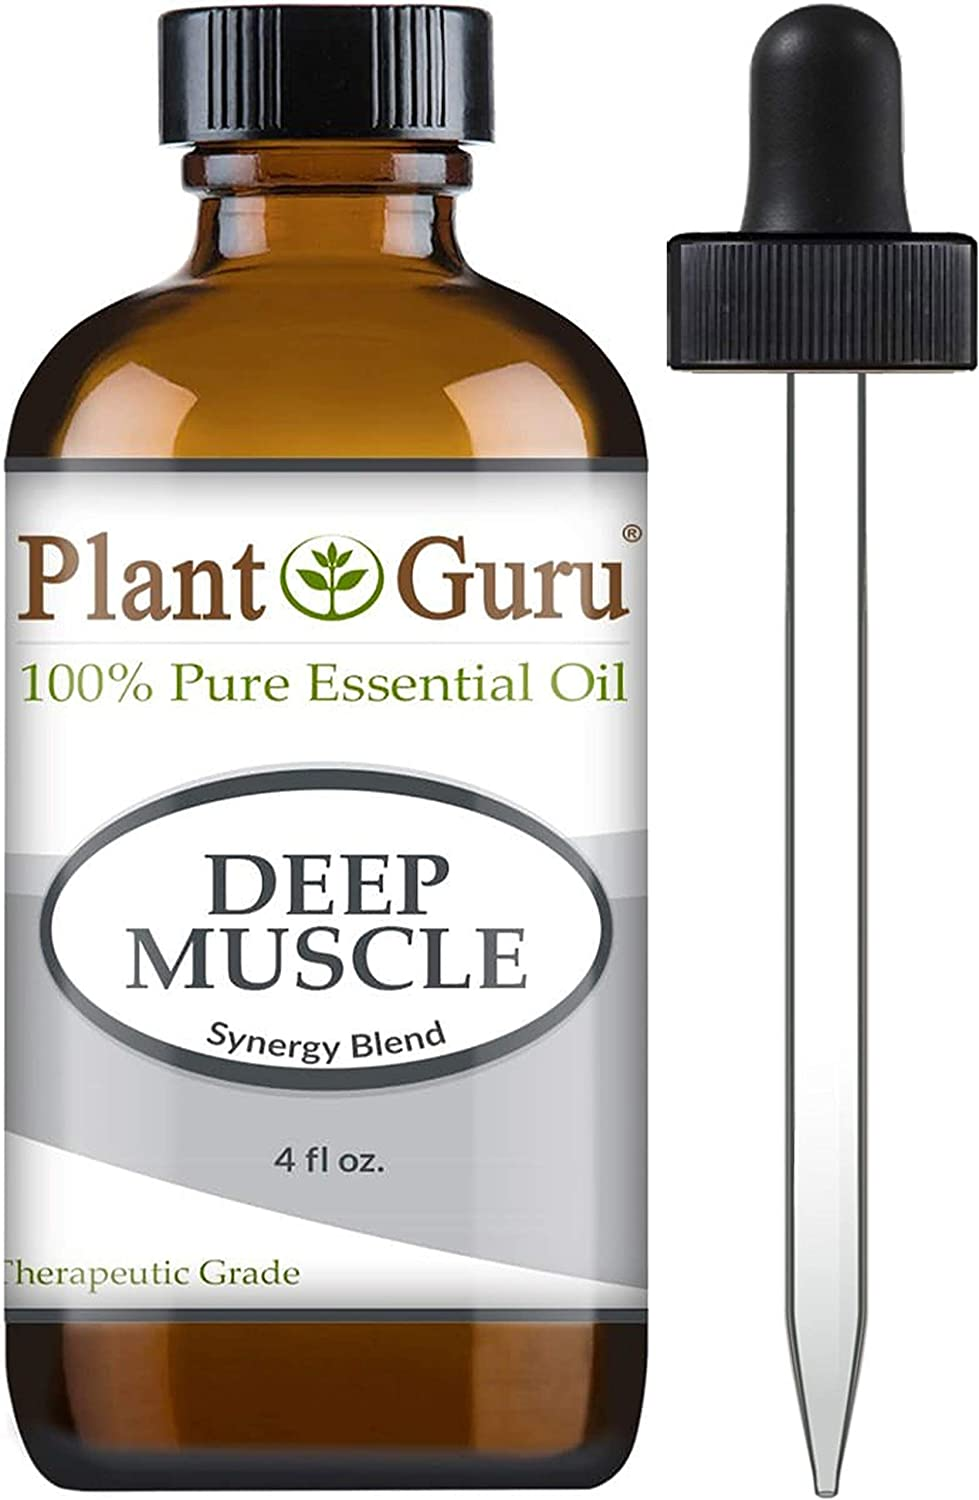 Deep Muscle Essential Oil Blend 4 oz 100% Pure, Undiluted, Therapeutic Grade. Great for Joint, Neck, Back, Spasms, Stiffness, Sore Muscle Pain.